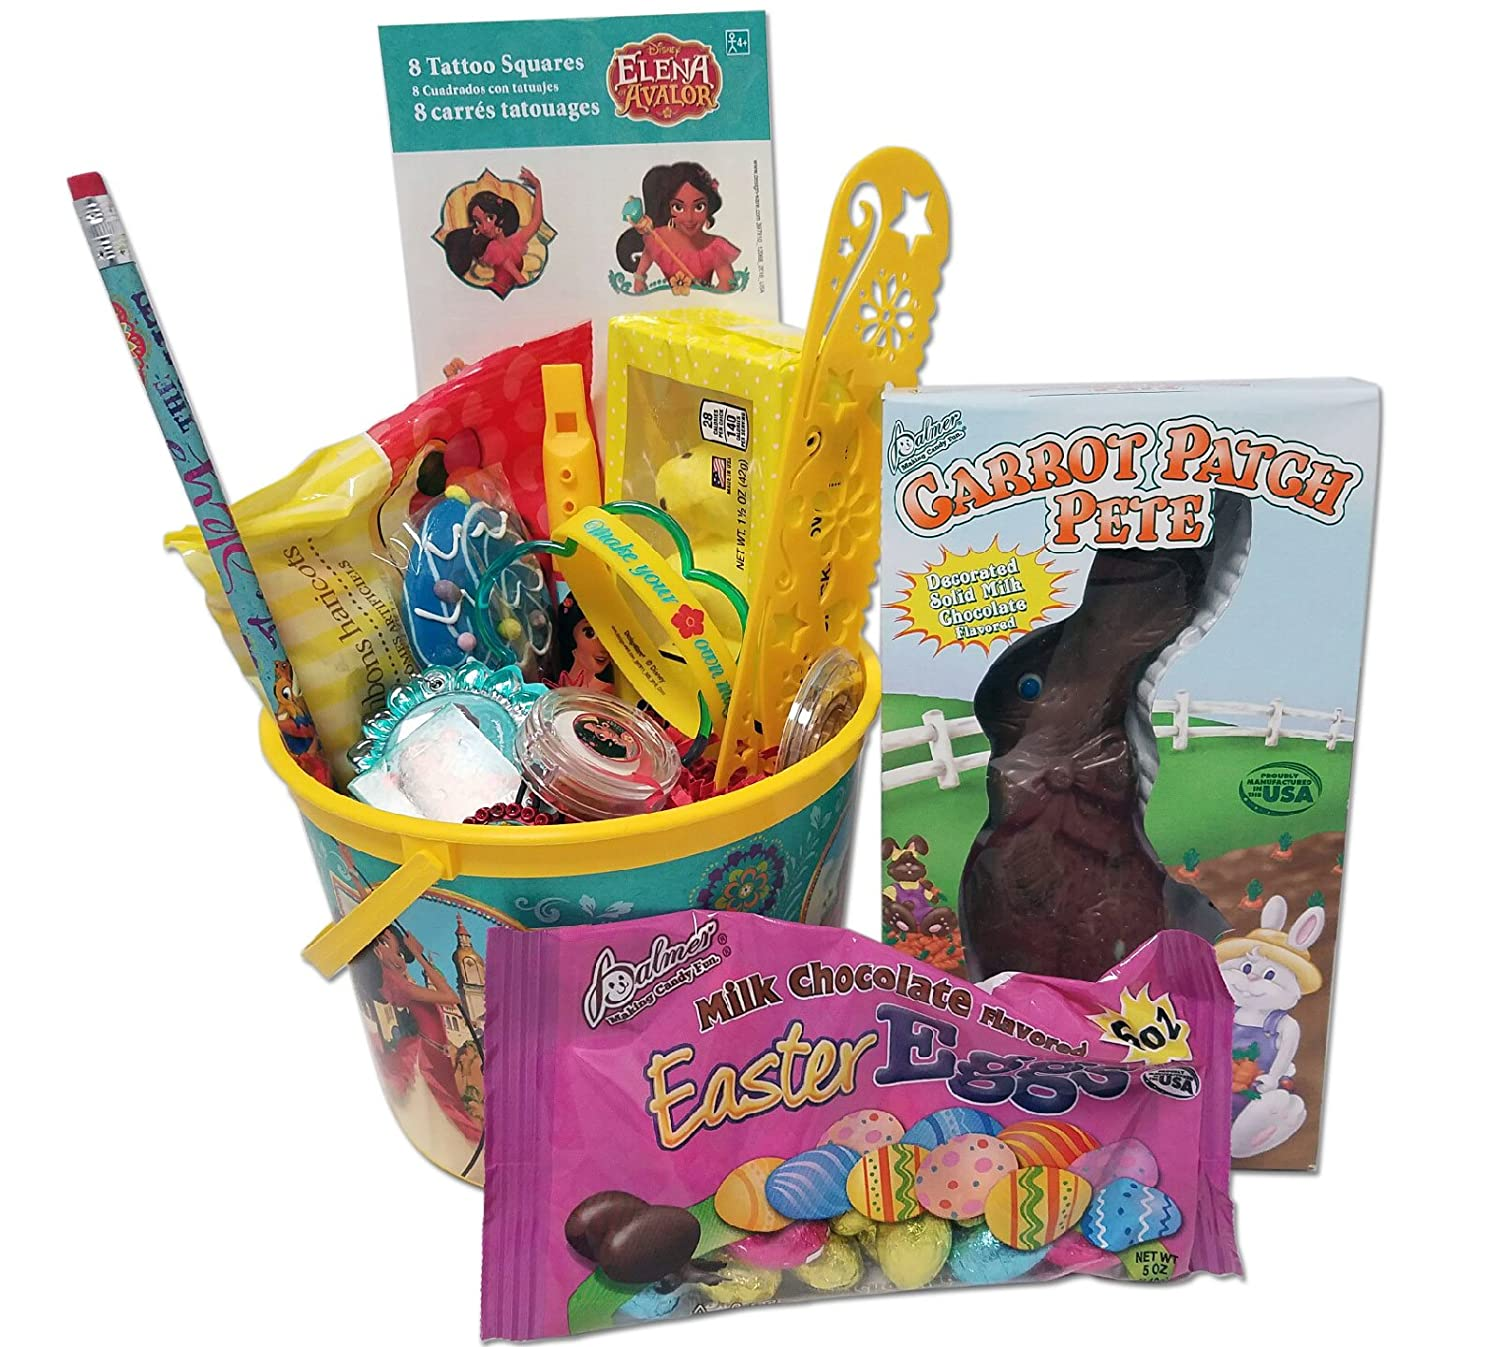 Disney Princess Elena of Avalor Easter Basket Stuffers for Girls with Toys and Treats Great for Toddlers and Girls ages 3-7 over 20 Items